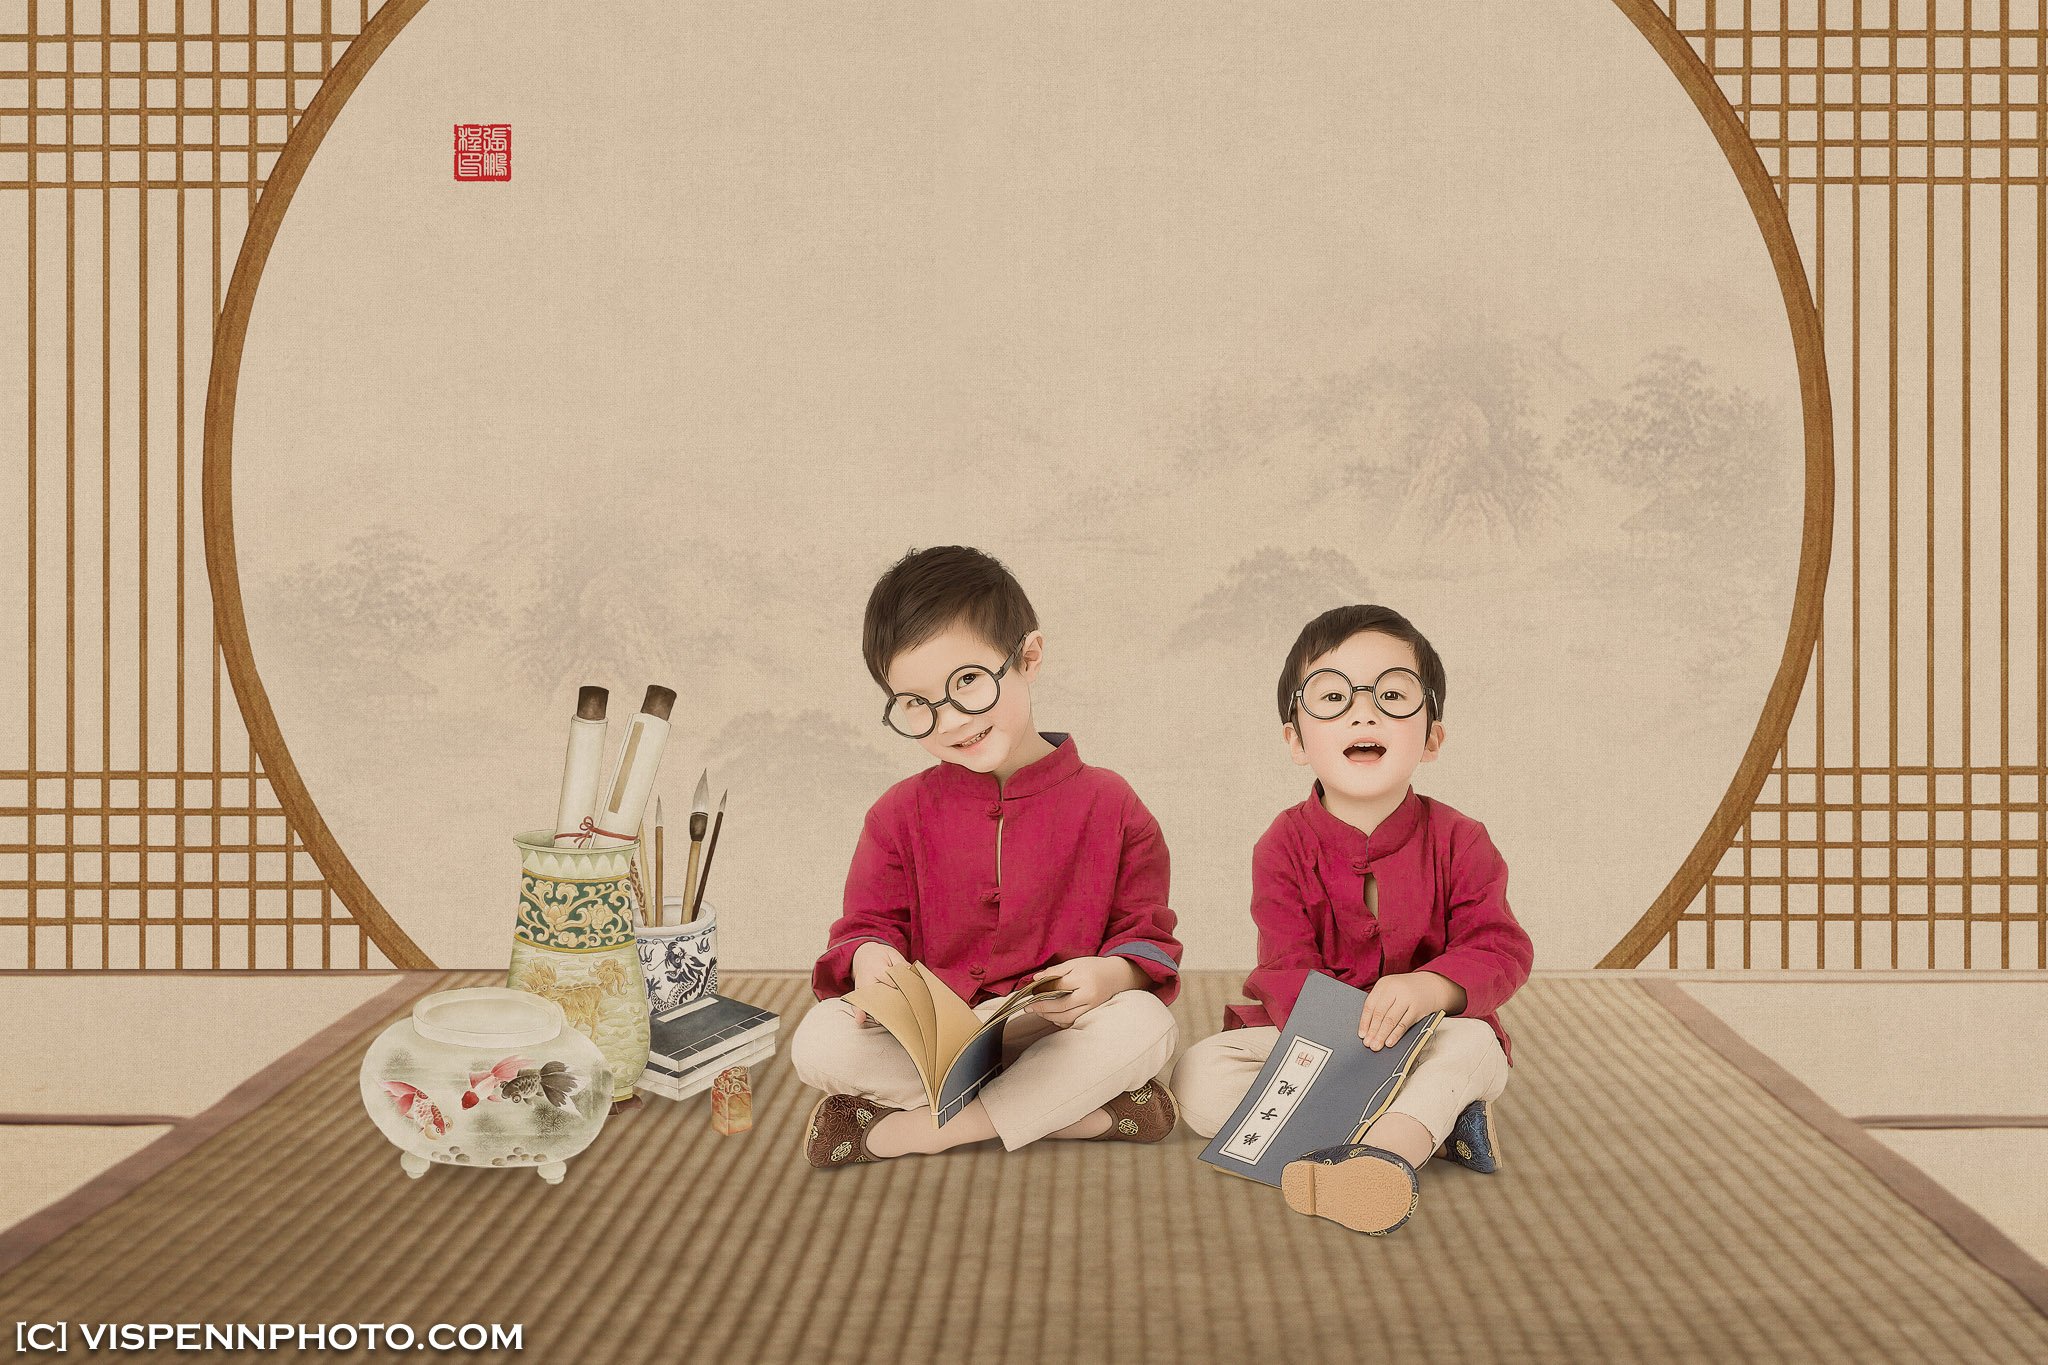 Melbourne Newborn Baby Family Photo BaoBao VISPENN 墨尔本 儿童 宝宝 百天照 满月照 孕妇照 全家福 KIDS VISPENN LidiX 0825